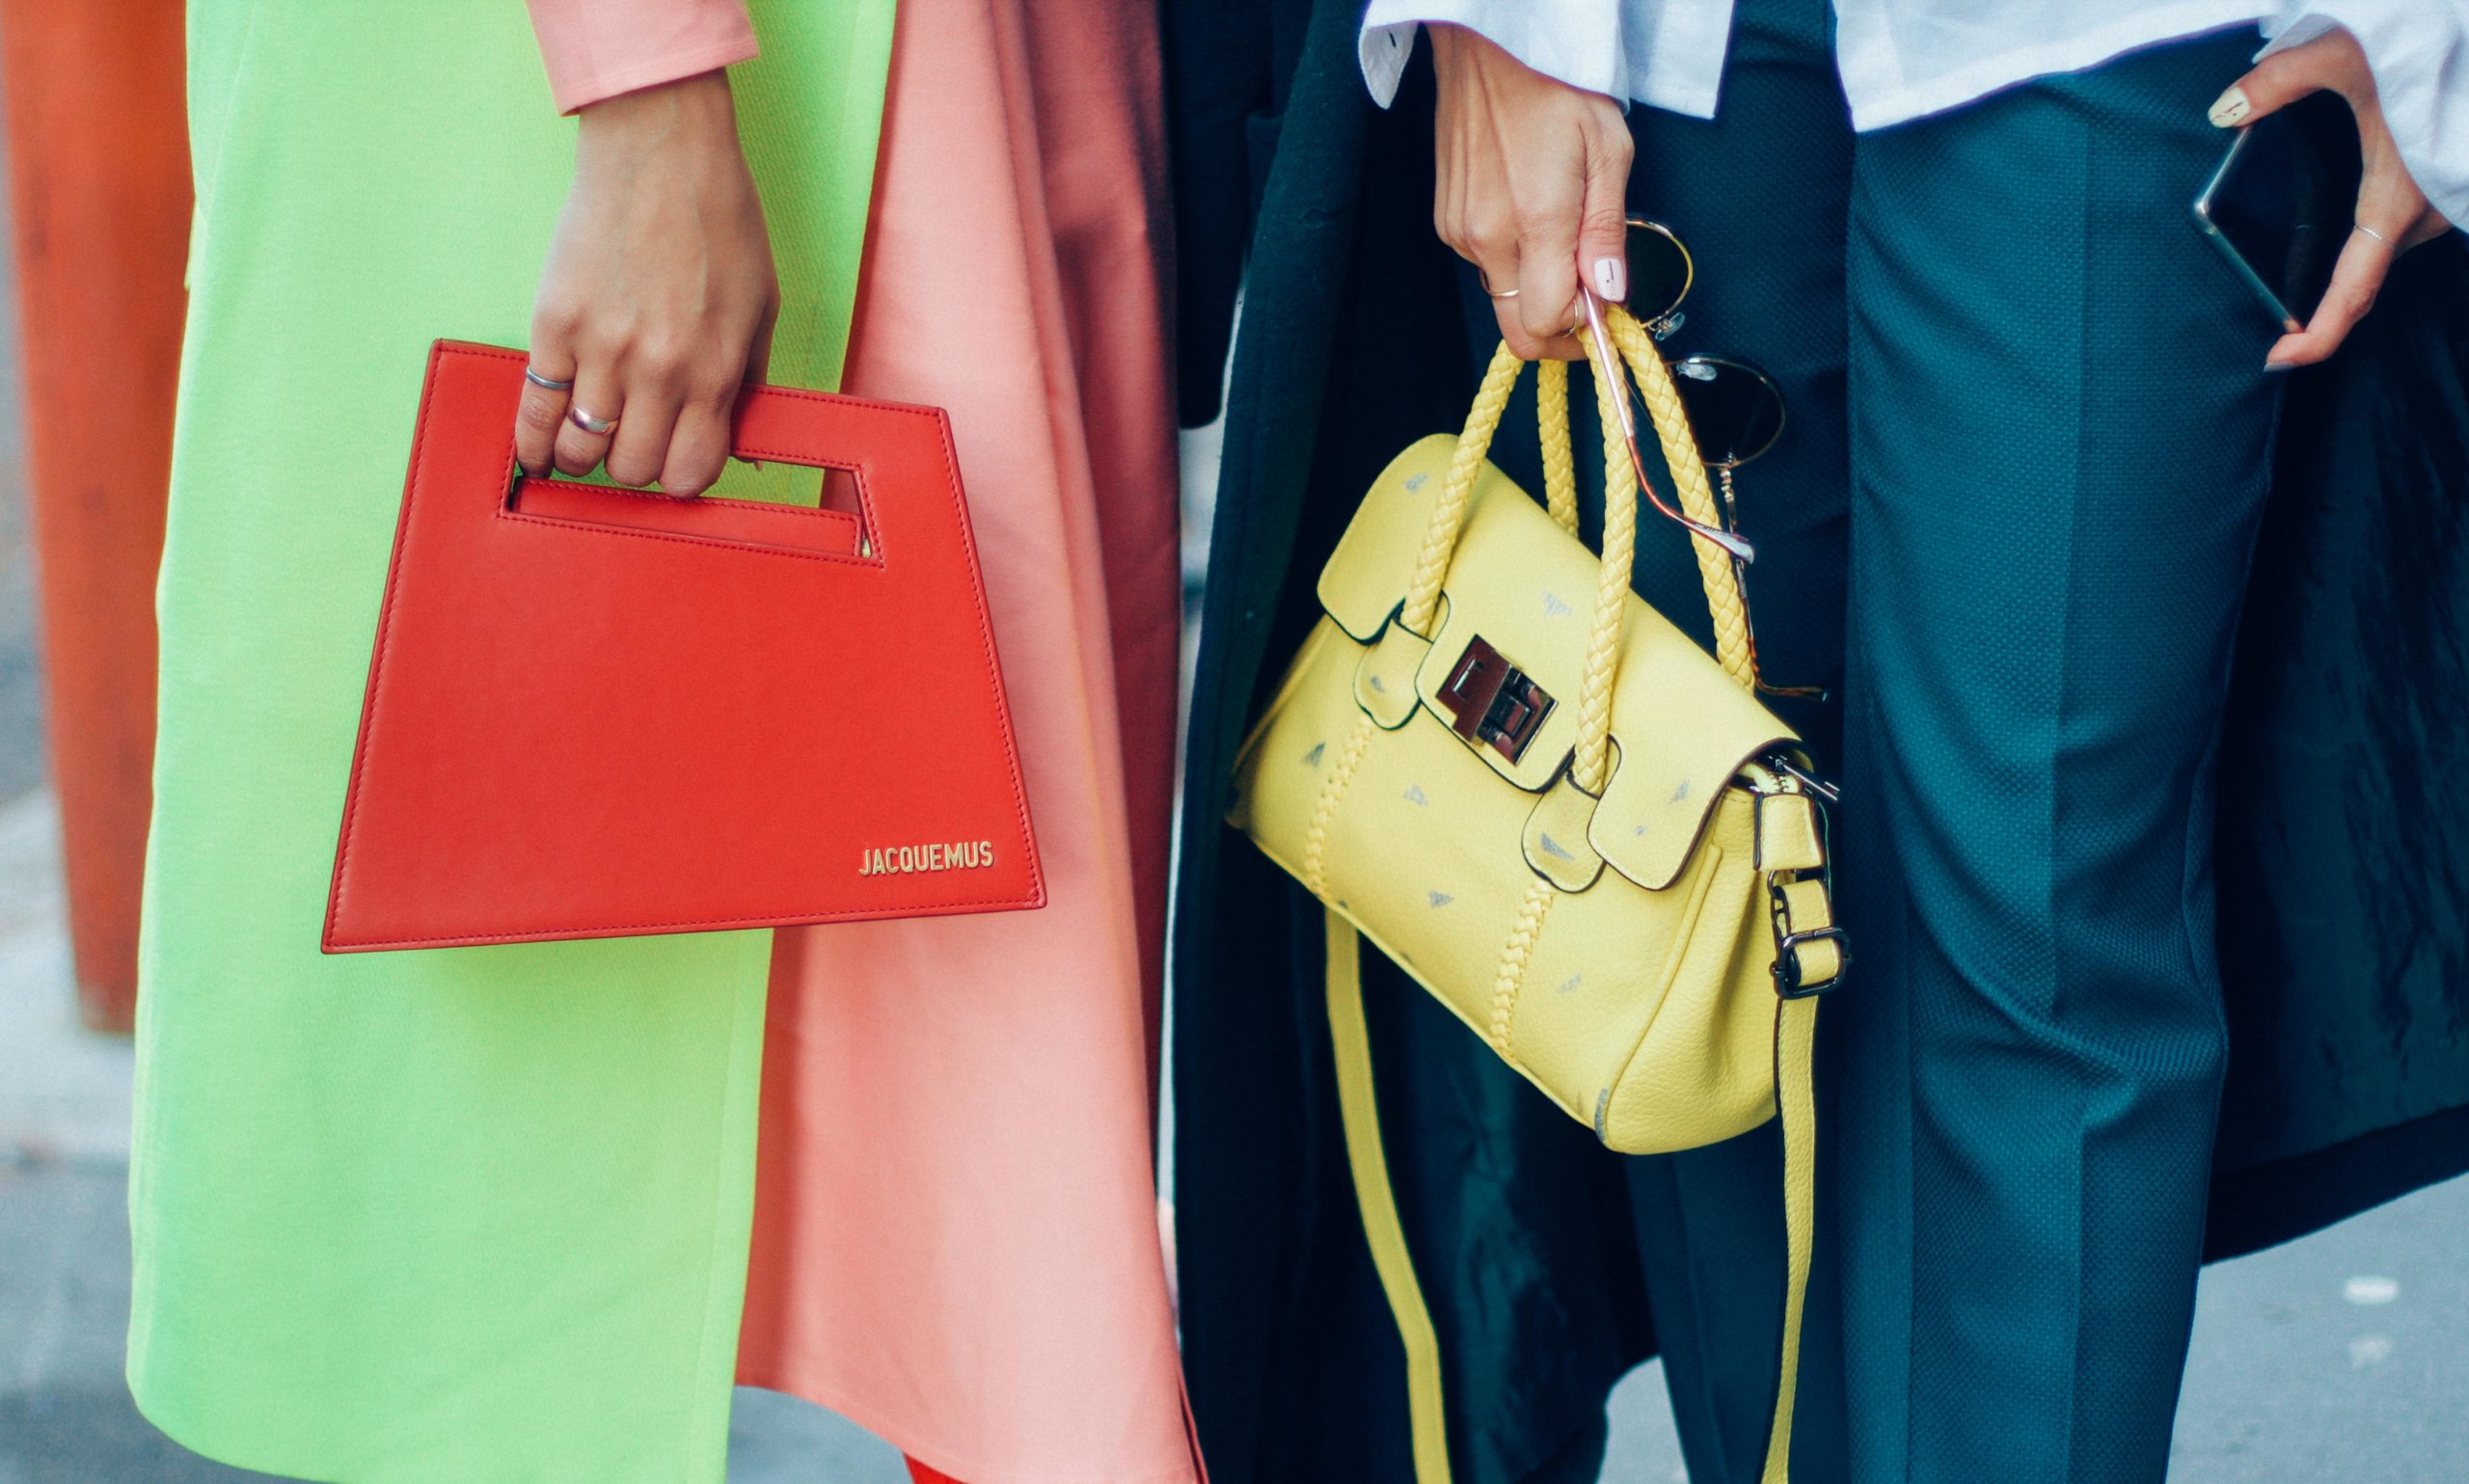 details from fashion week showing colour block outfits and red and yellow purse